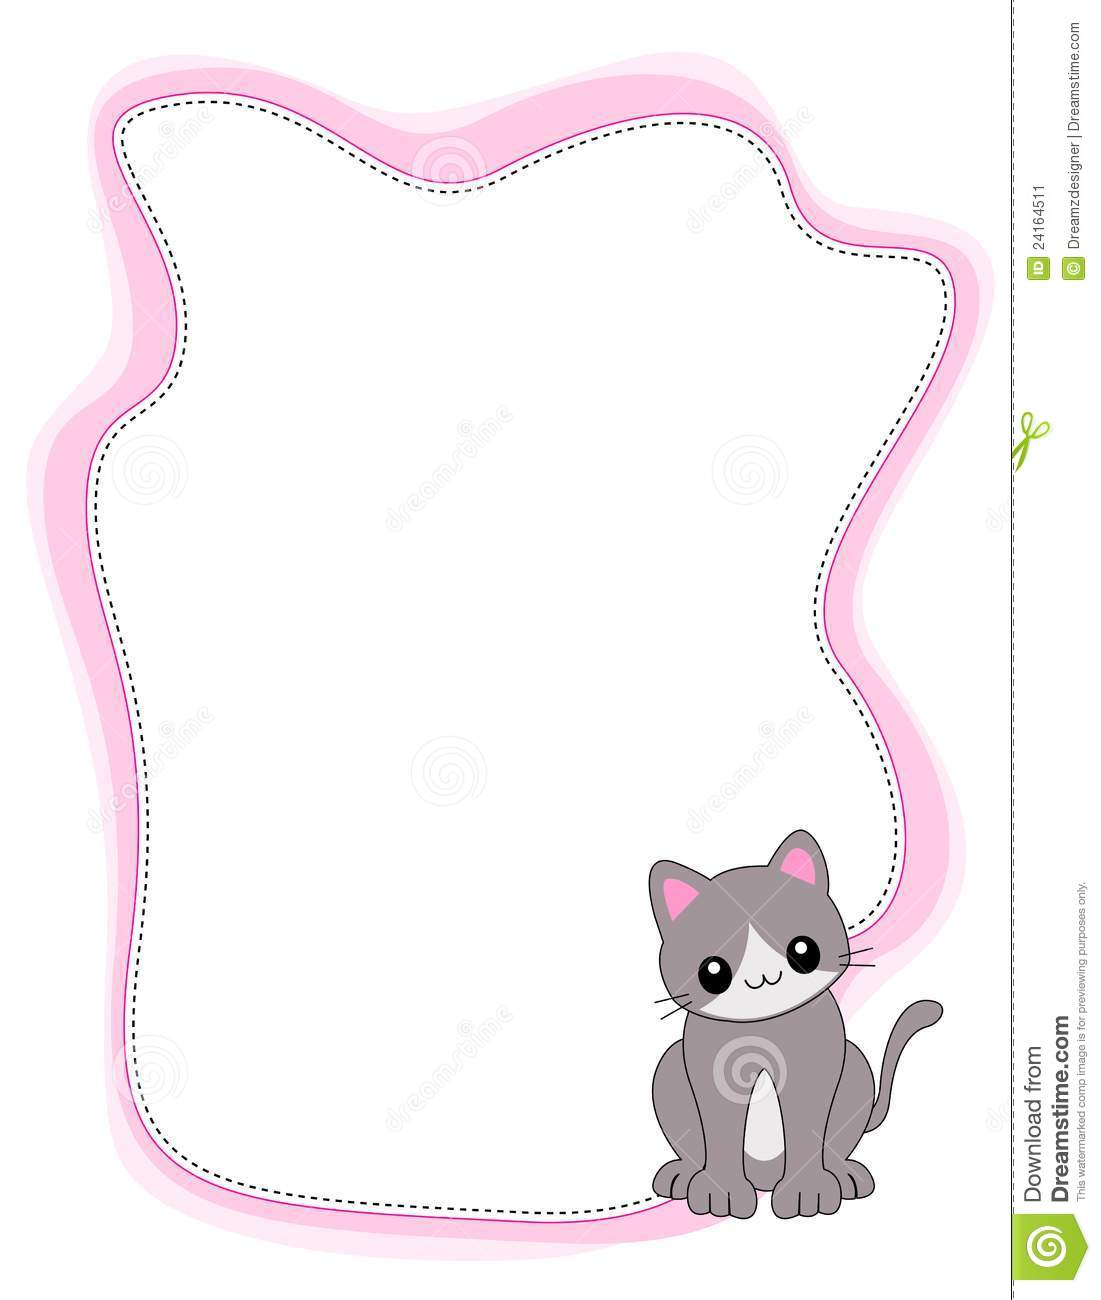 Illustration of a cute little kitten with pink border / frame.